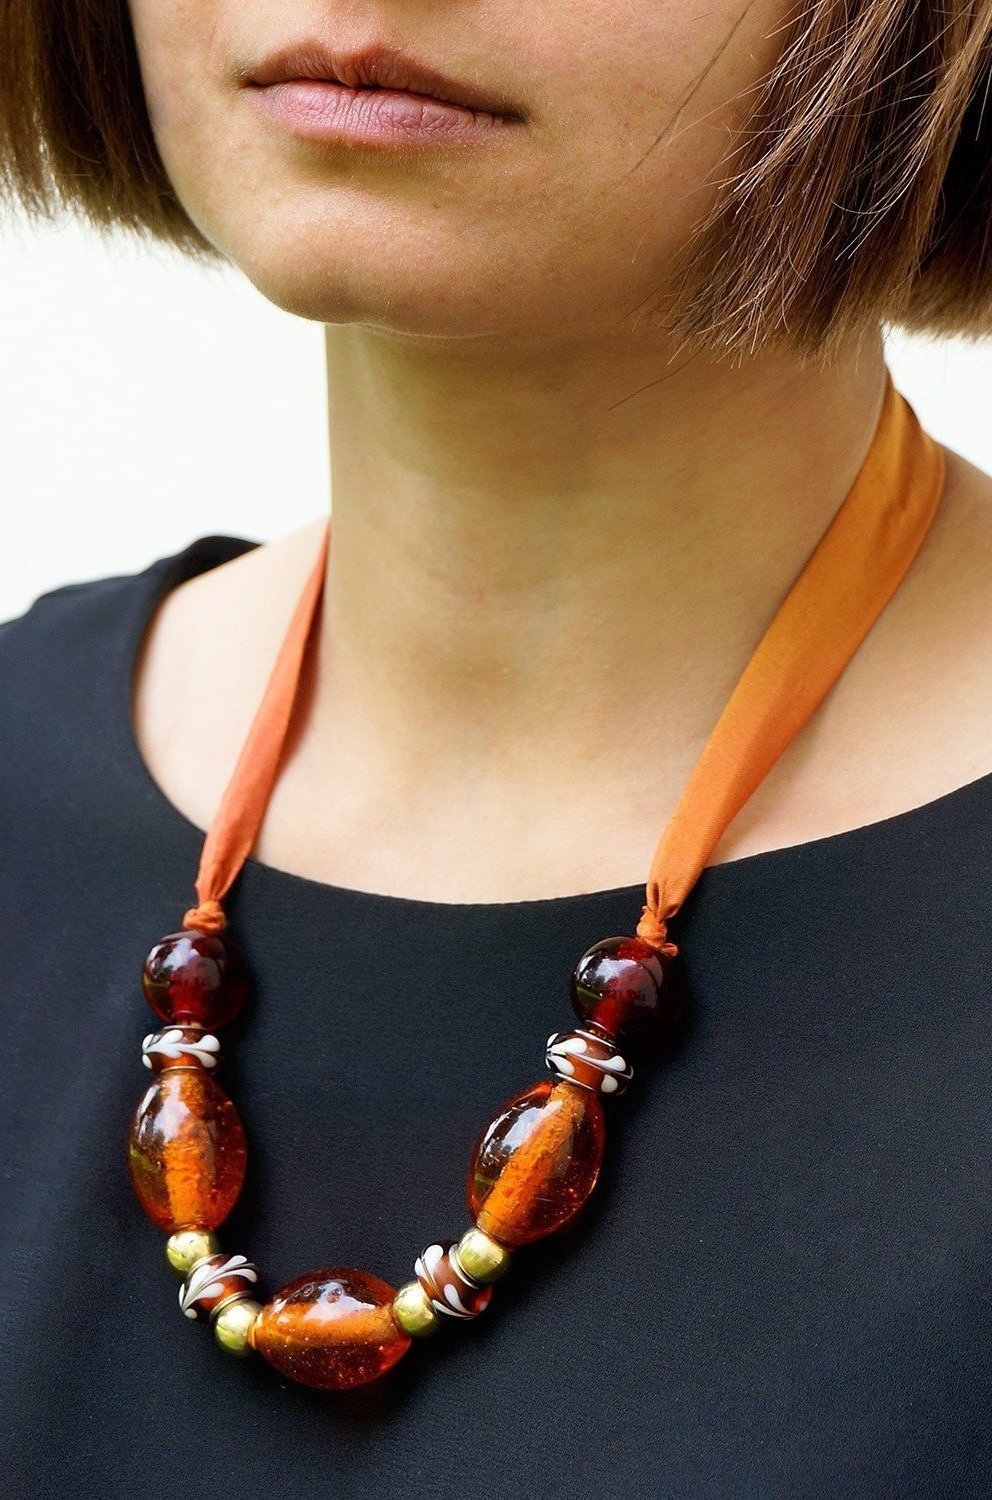 Amber Lights necklace - Arati Devasher: Painted Silk Accessories - Necklace - 2